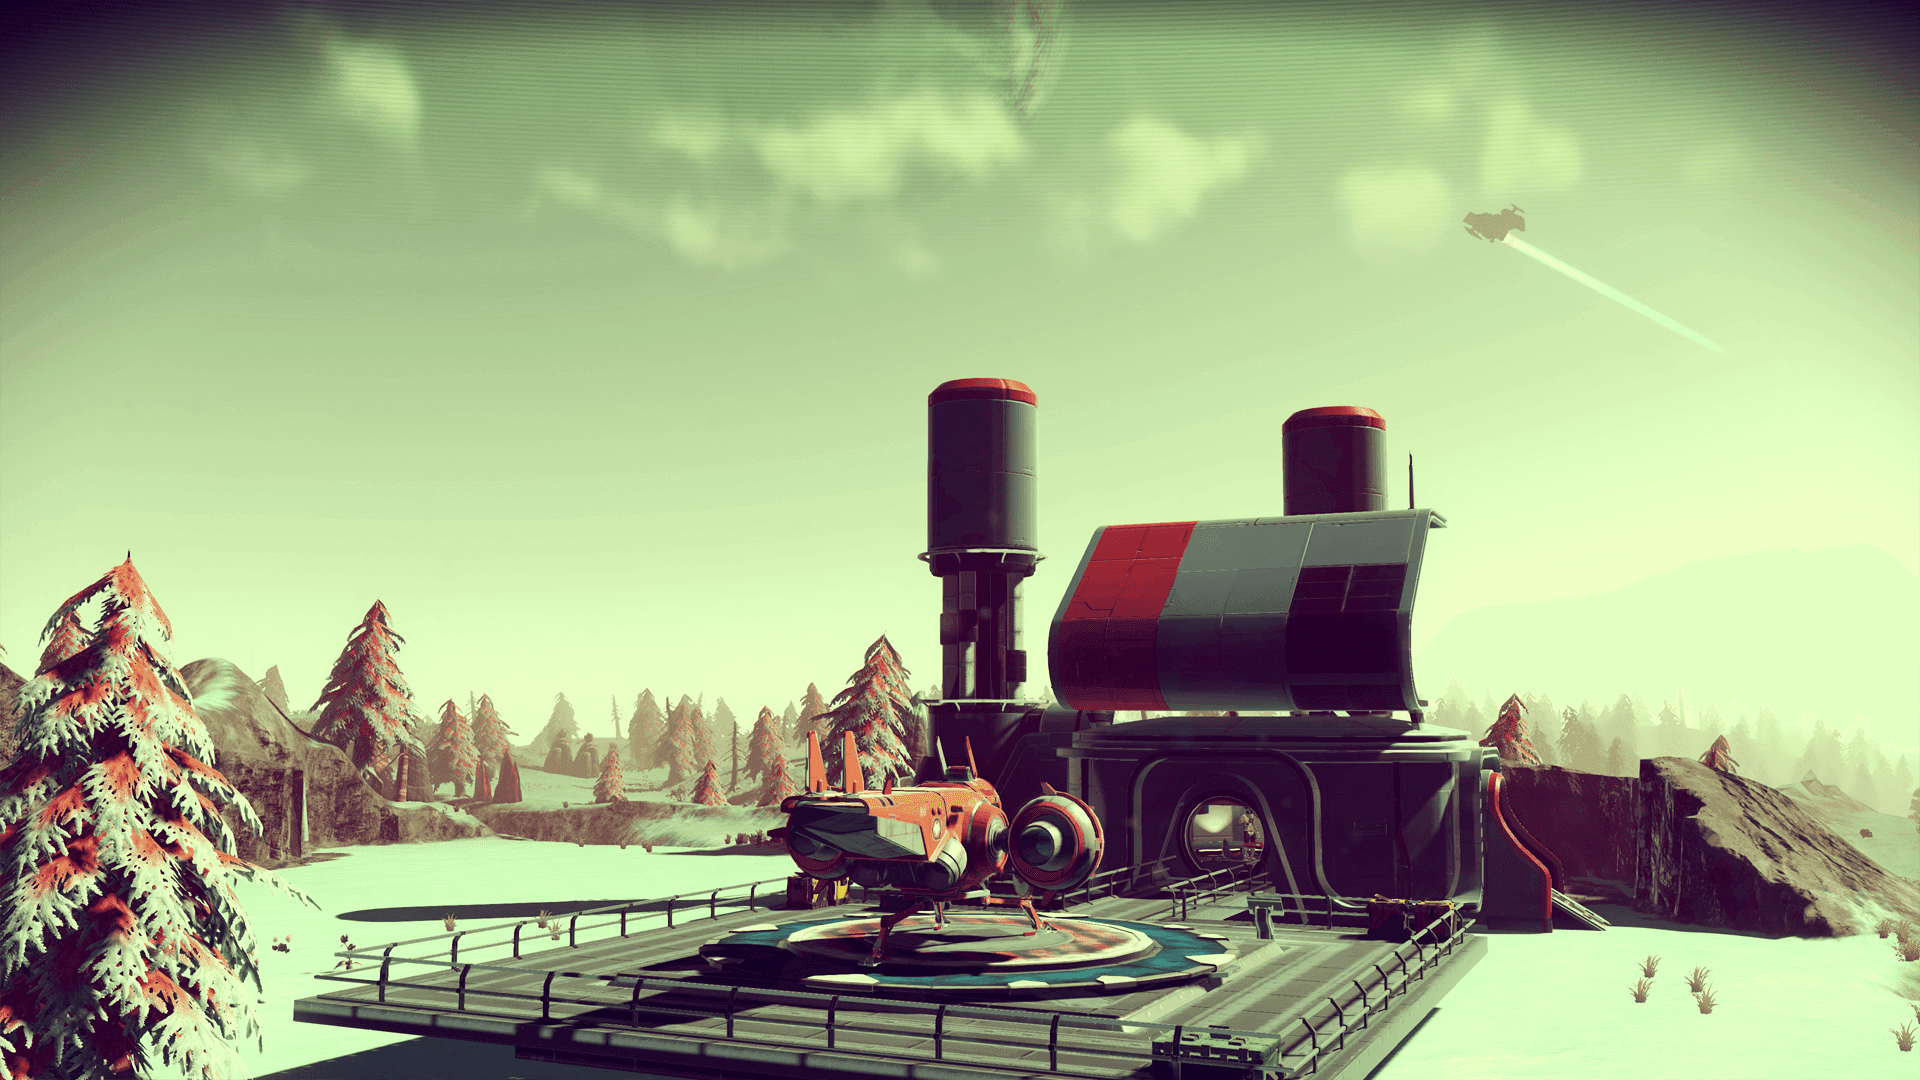 Beyond Delivers The No Mans Sky Experience I Was Waiting